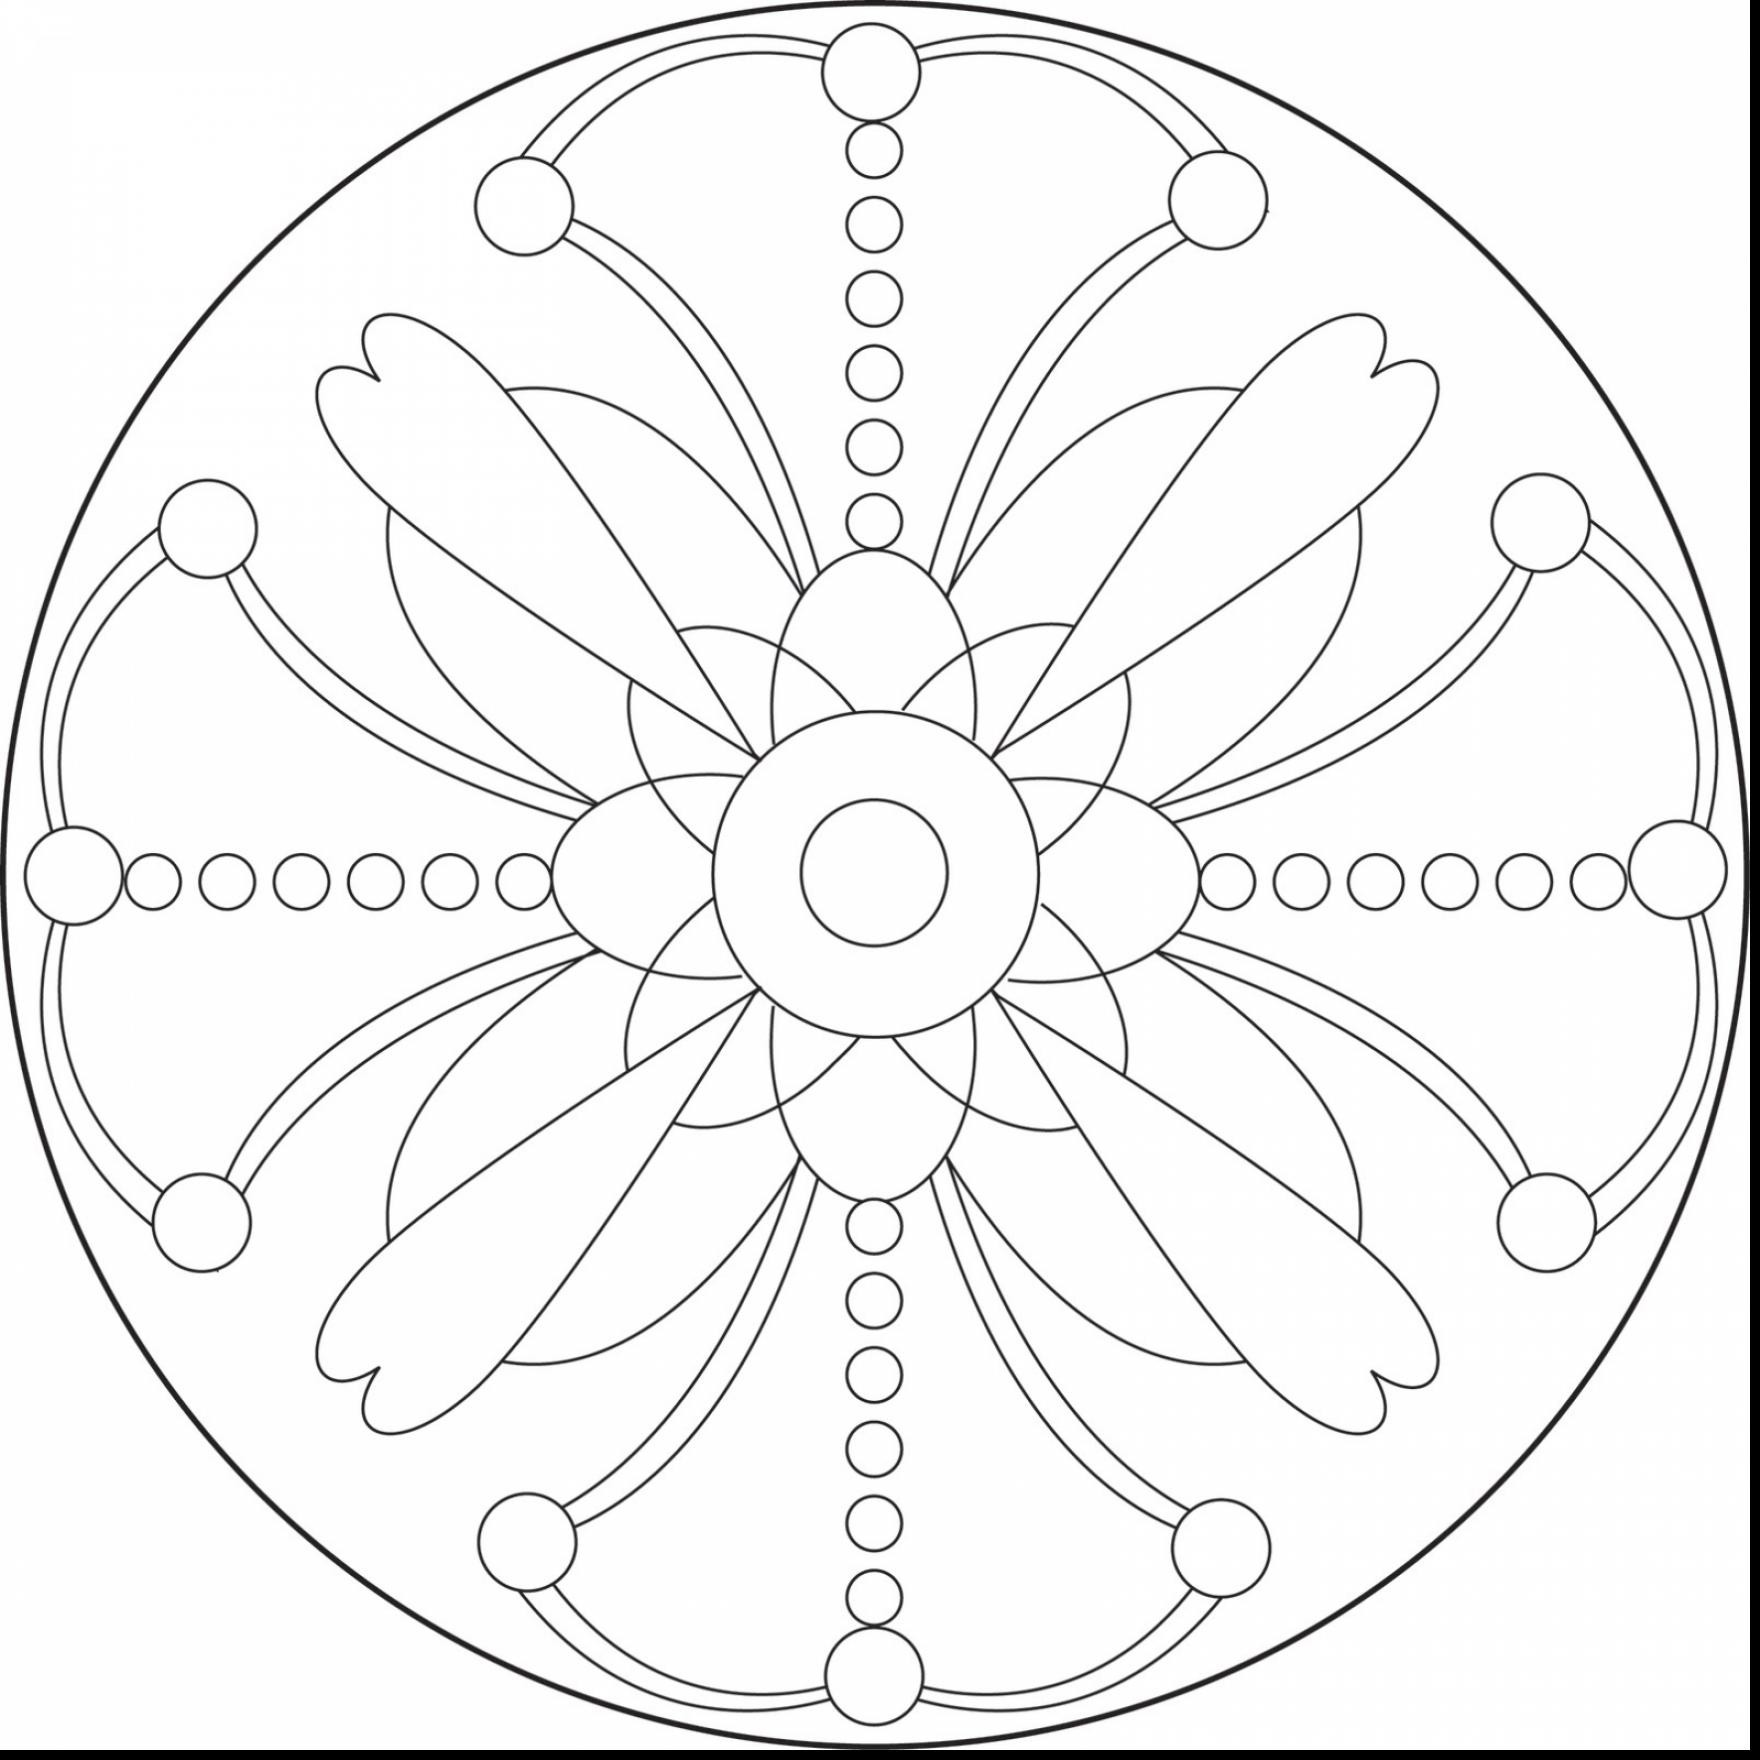 1760x1760 Star Coloring Pages Printable. Shooting Star Coloring Pages